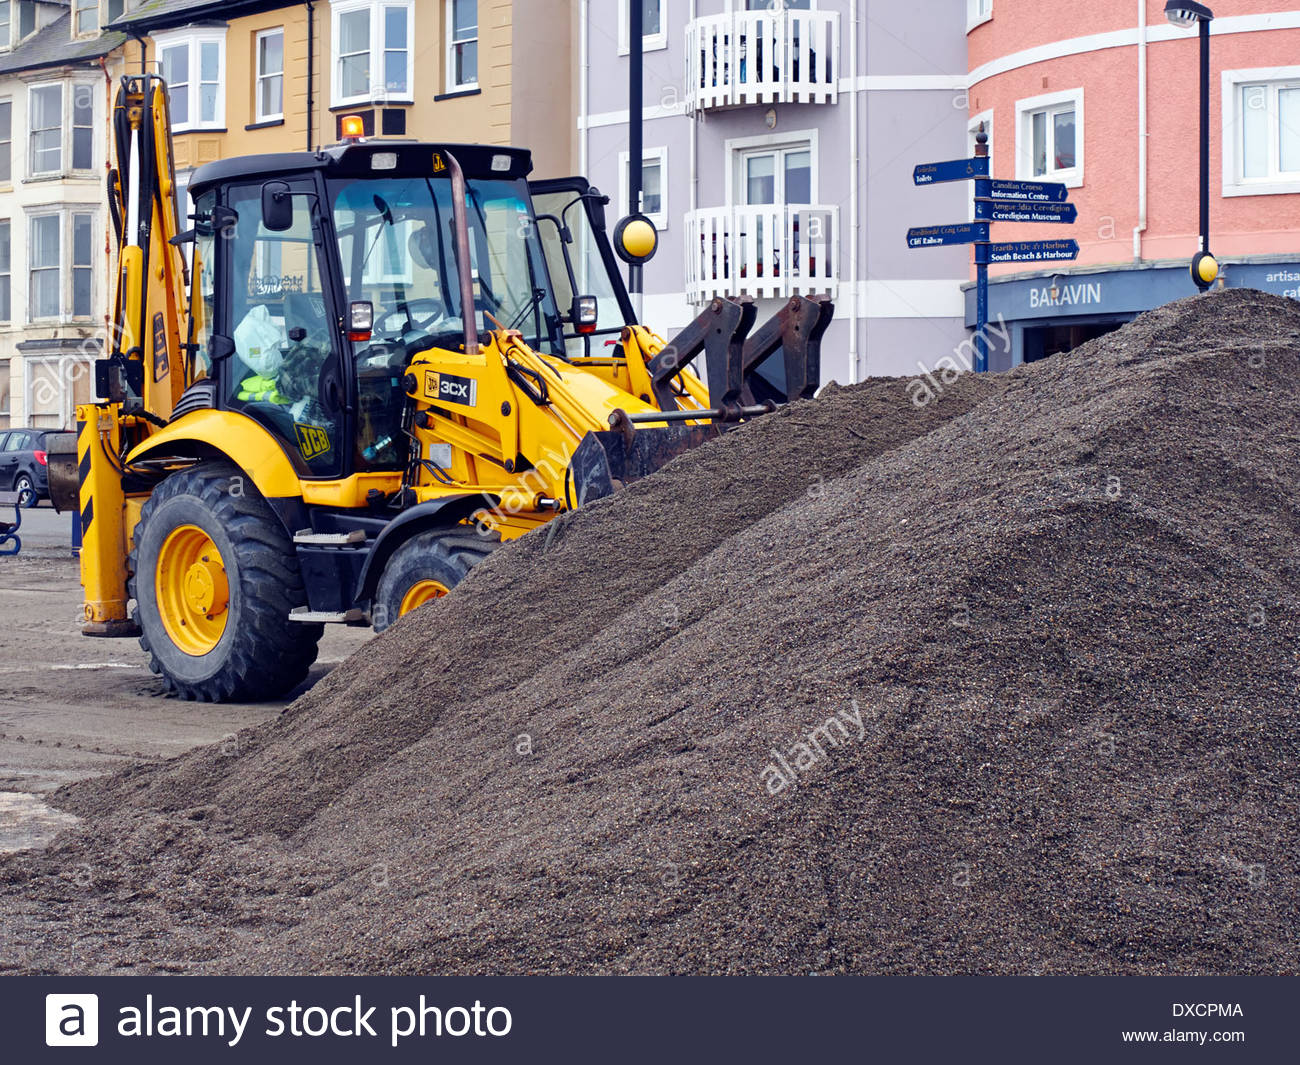 3cx Stock Photos Images Alamy Wiring Diagram Jcb A Backhoe Loader Tractor Parked After Shifting Pile Of Sand On Aberystwyth